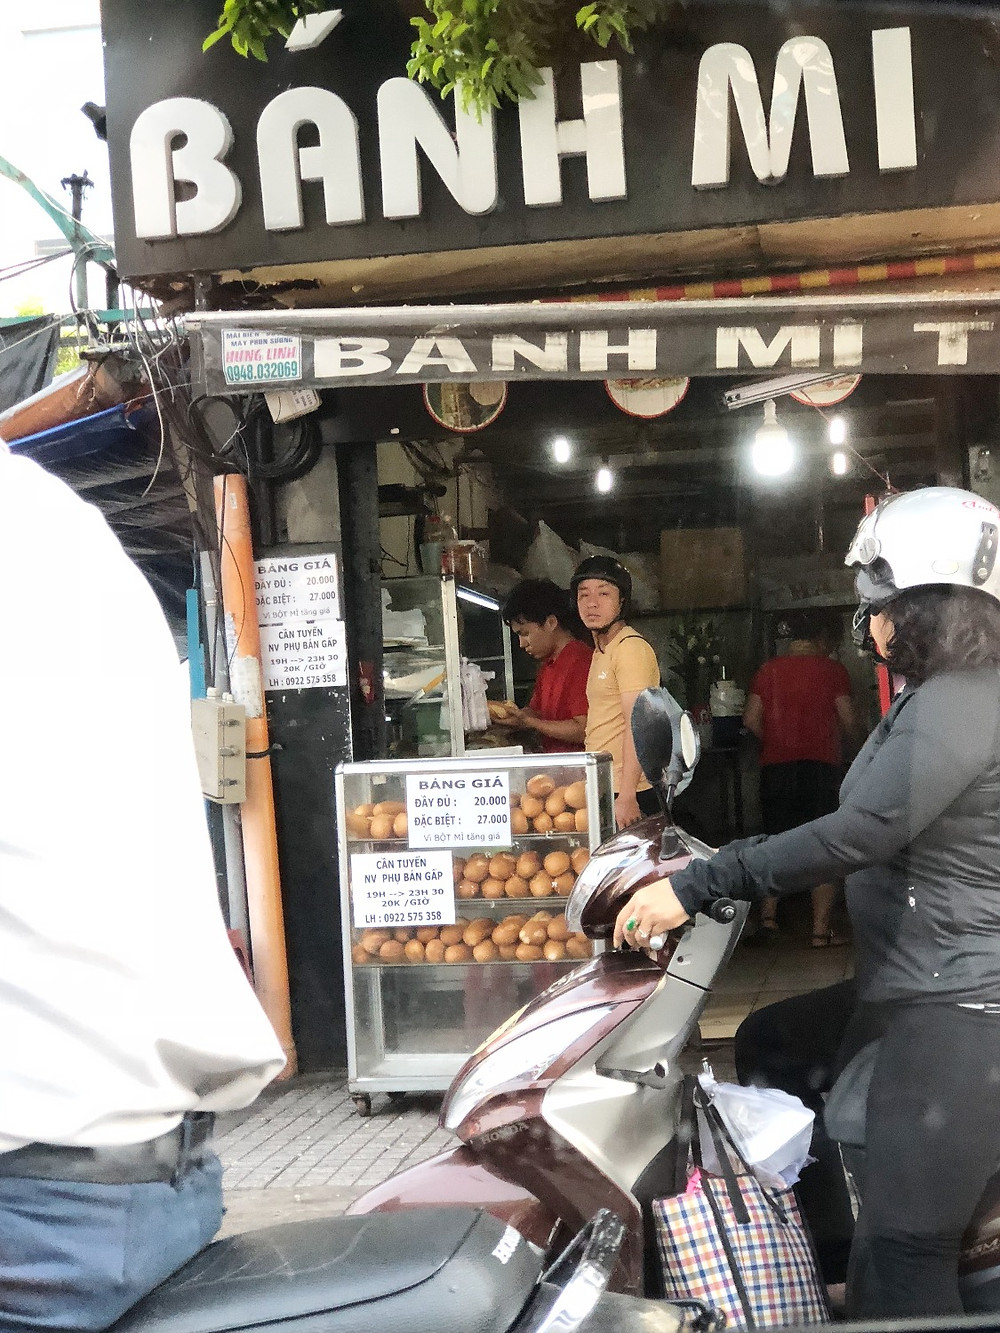 asian street food safety - what to look for and what to adviod // sunnyinjune.com